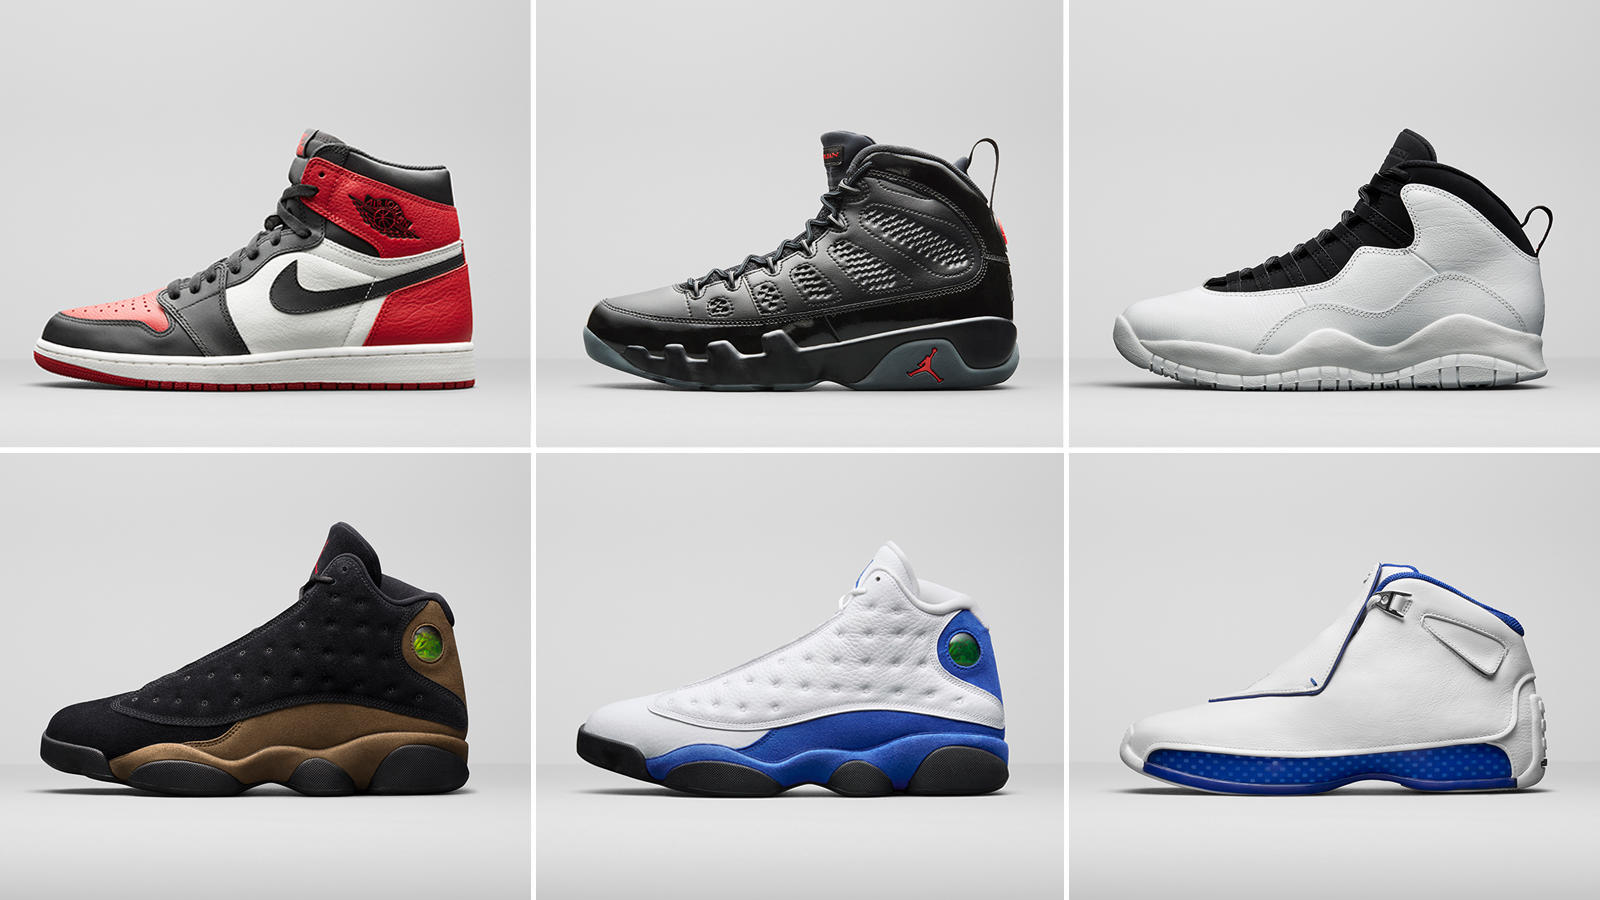 719ebf059eb8 Jordan Brand Unveils Select Styles for the Spring Season - Nike News